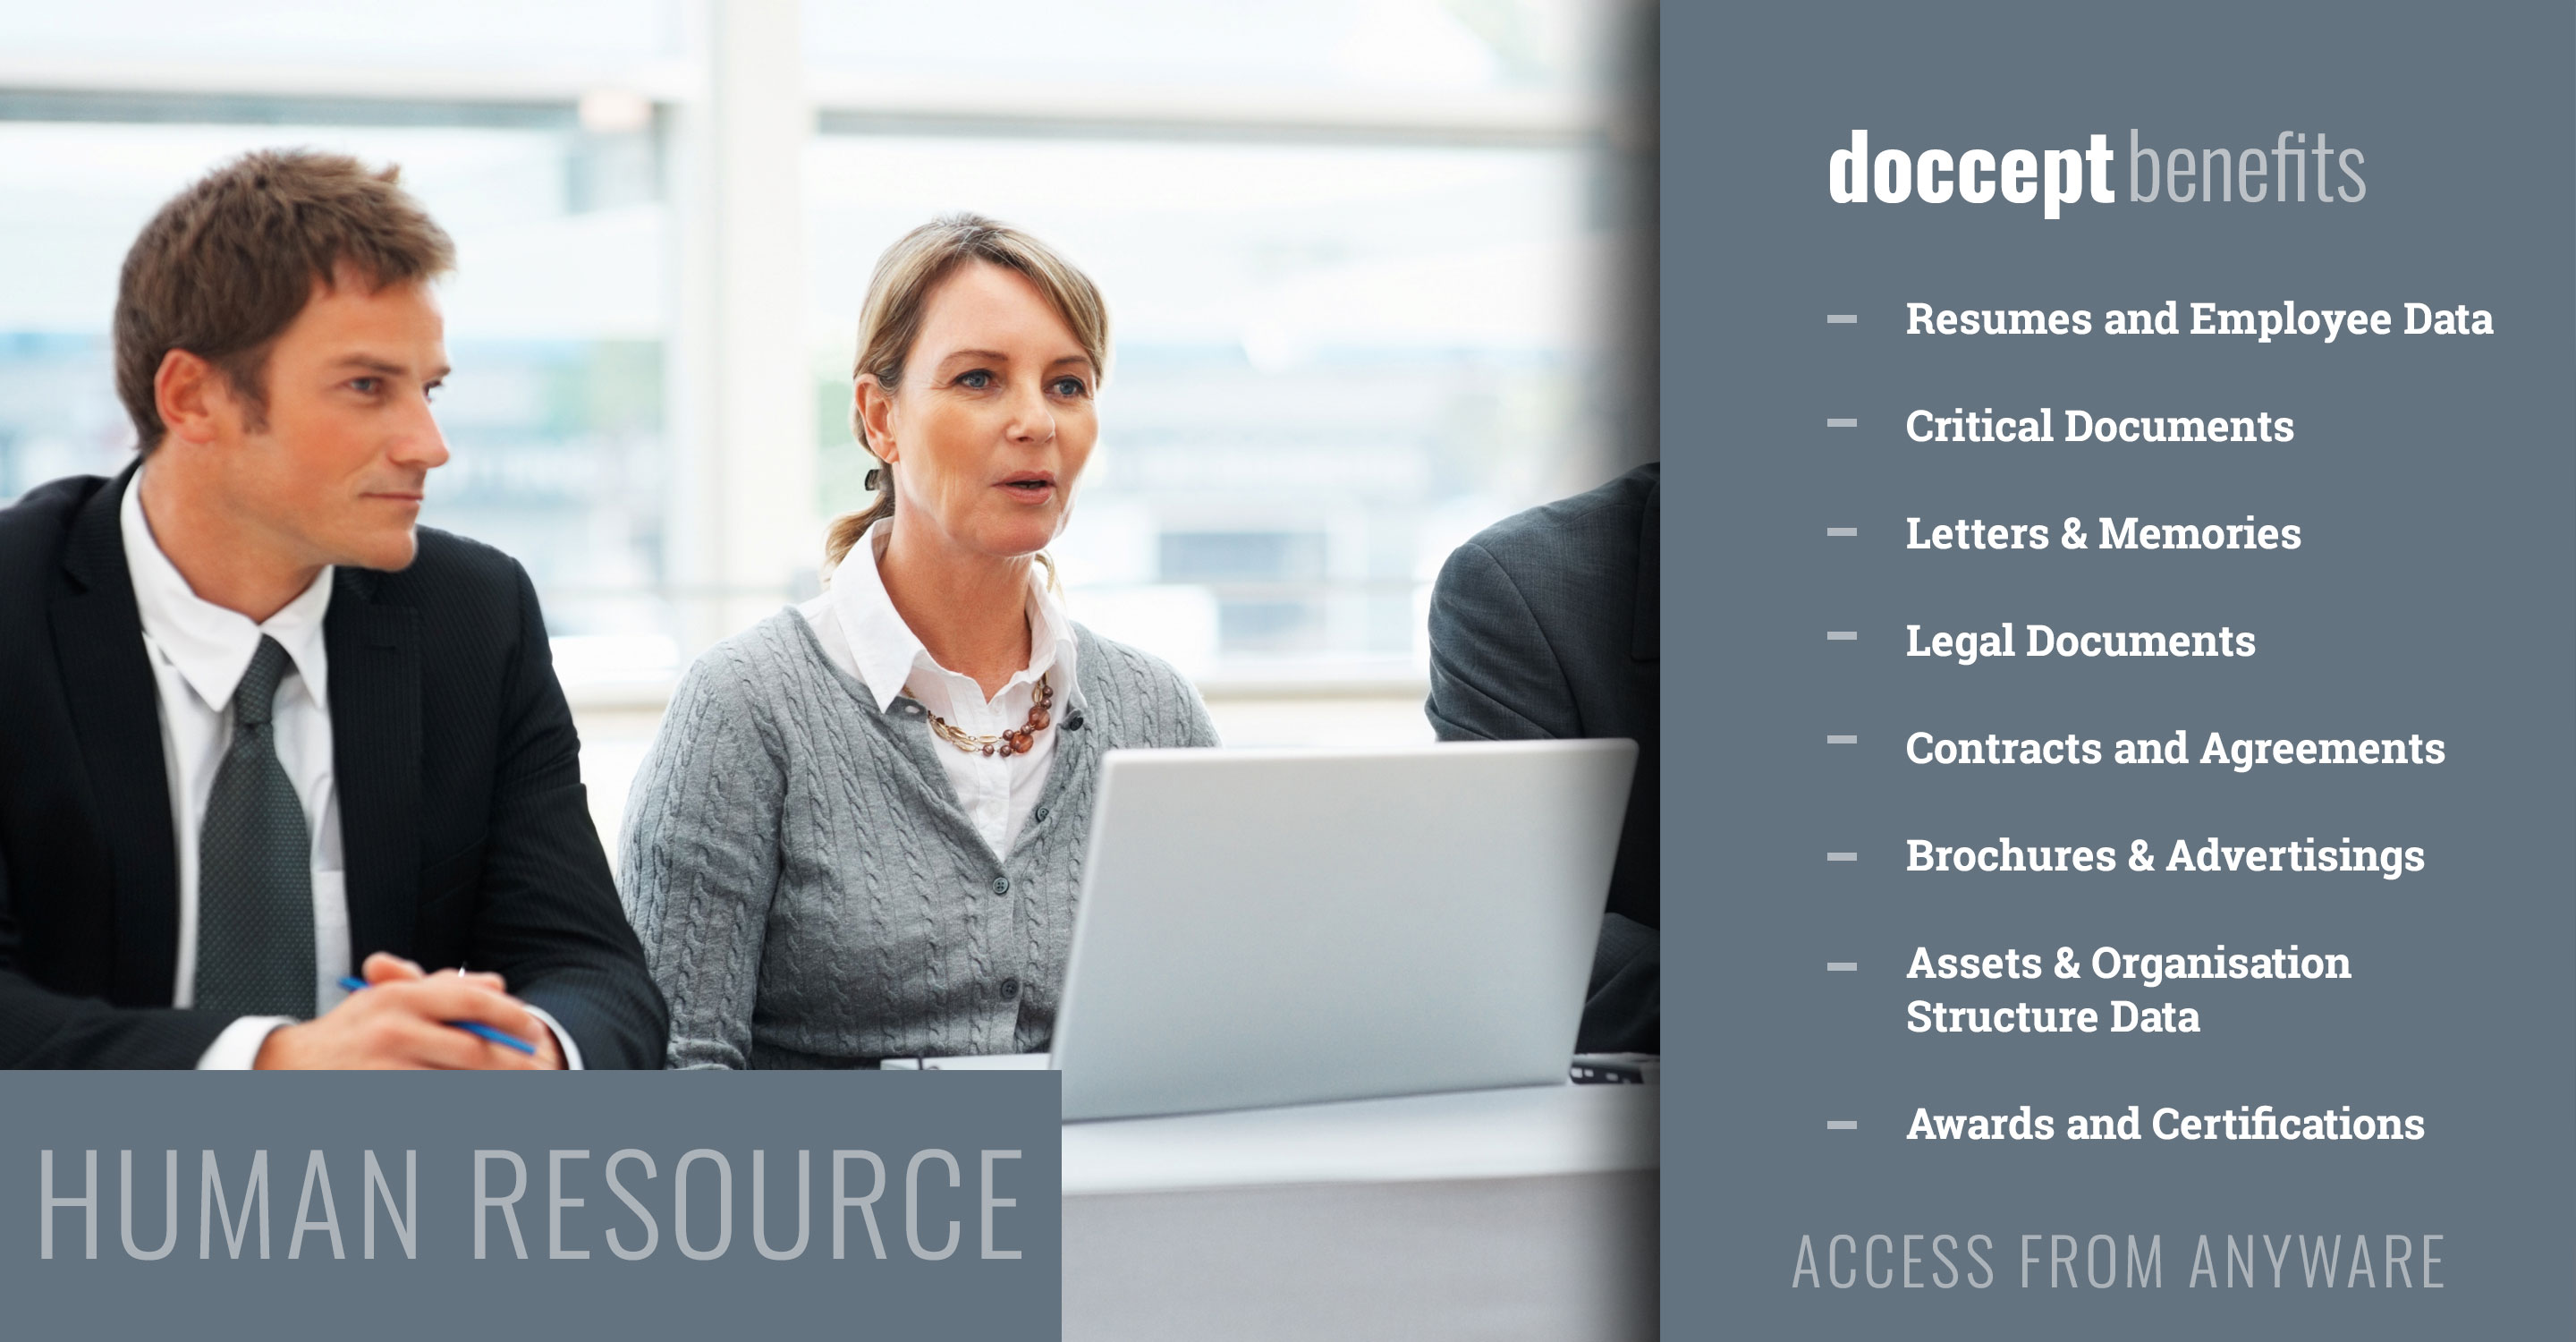 Human Resource Document Management